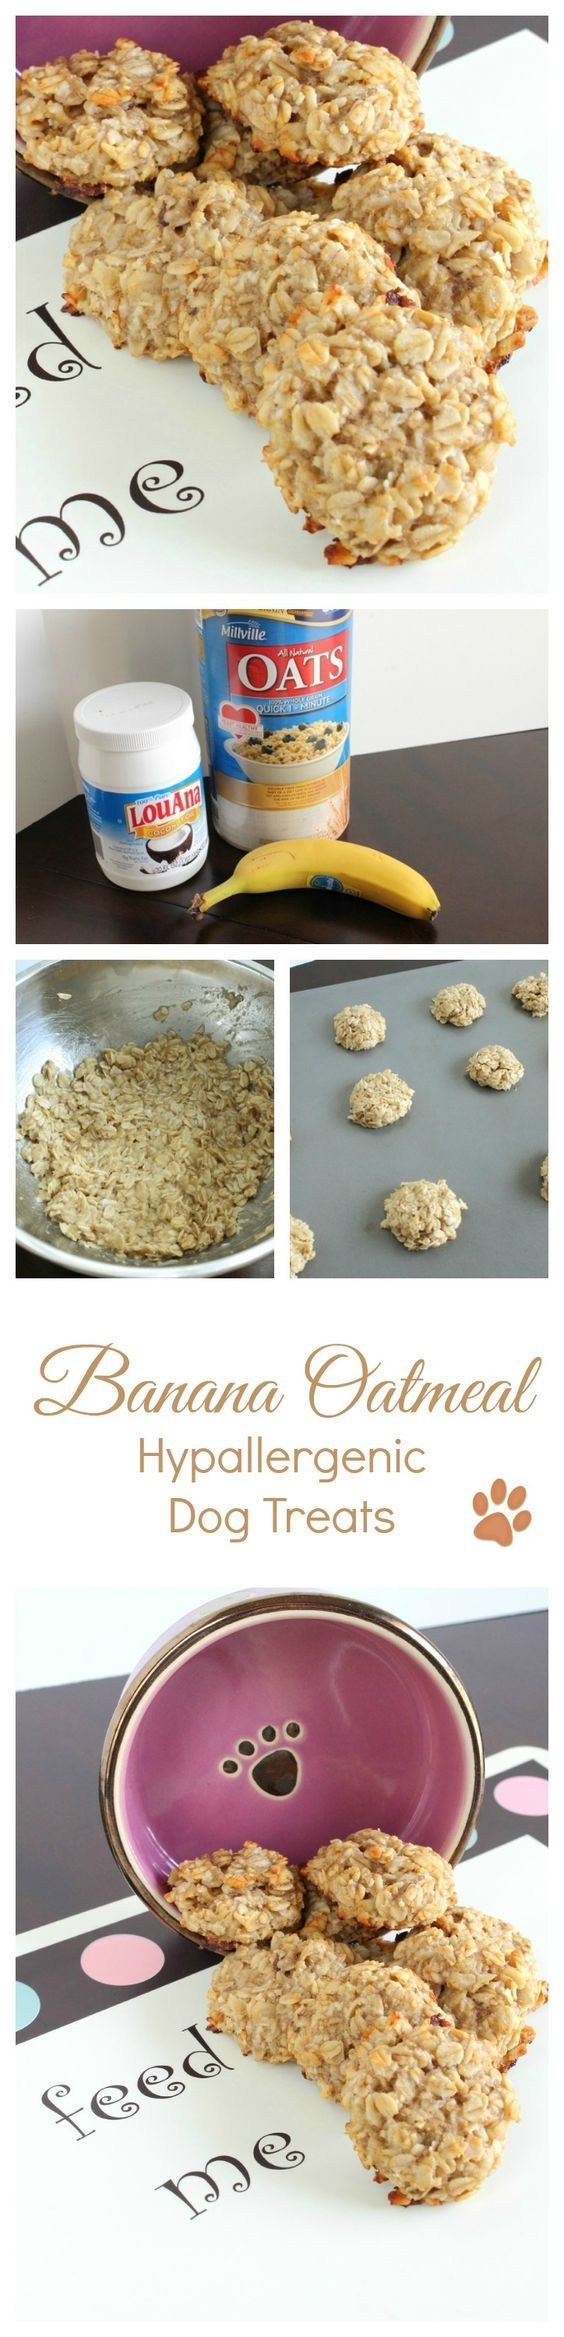 DIY Banana Oatmeal Dog Treats for Hypoallergenic Dogs